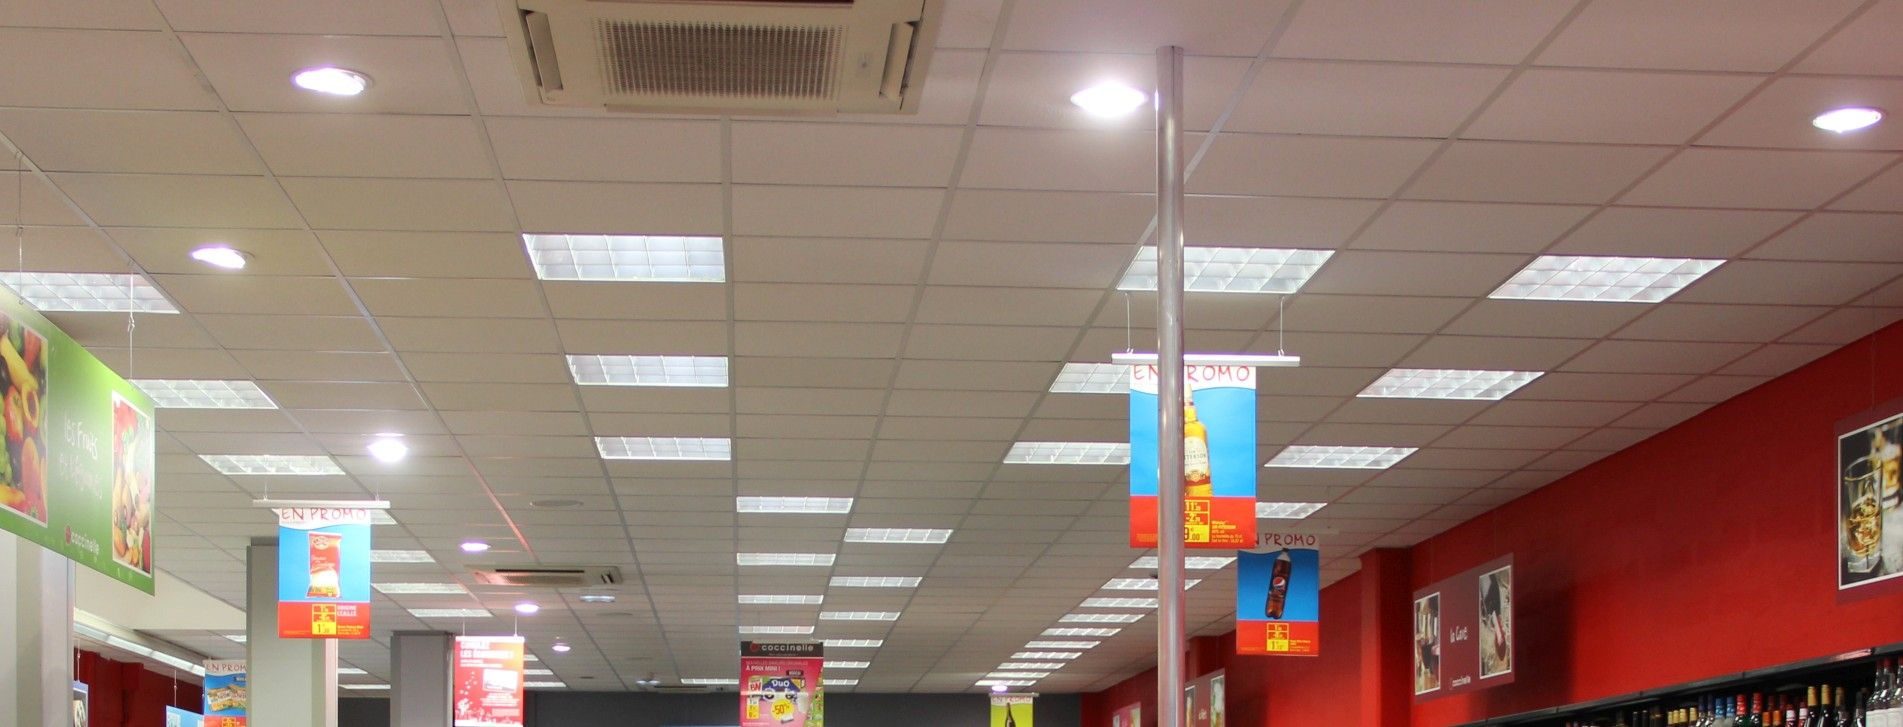 Eclairage Led Magasin Eclairage Magasin